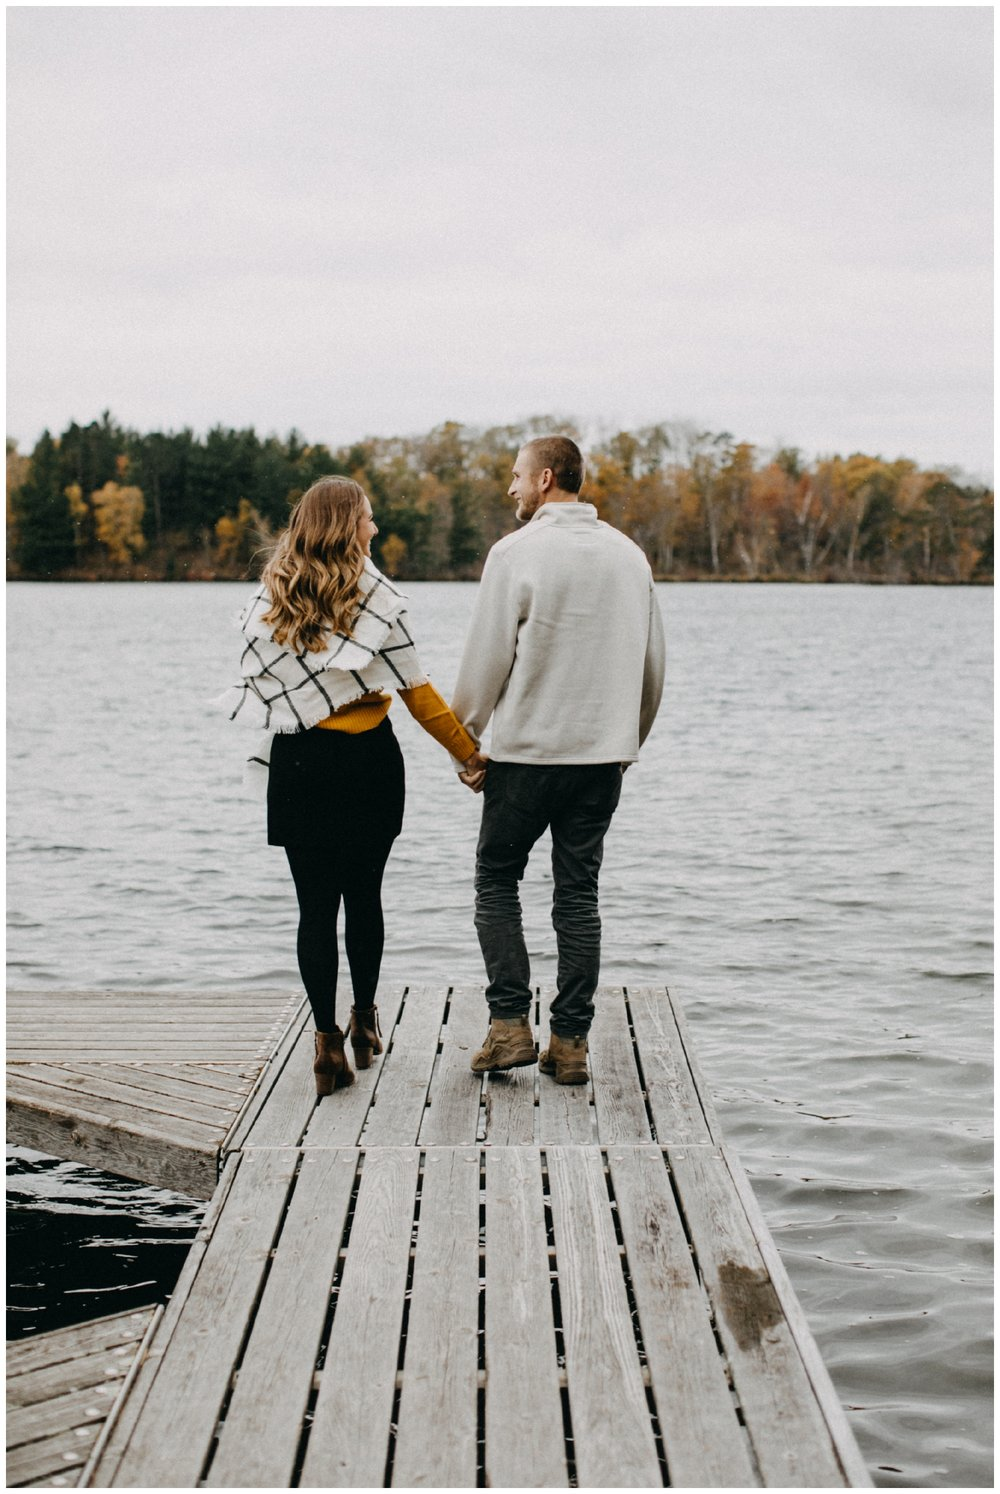 Cabin on the lake engagement session in Hackensack, Minnesota